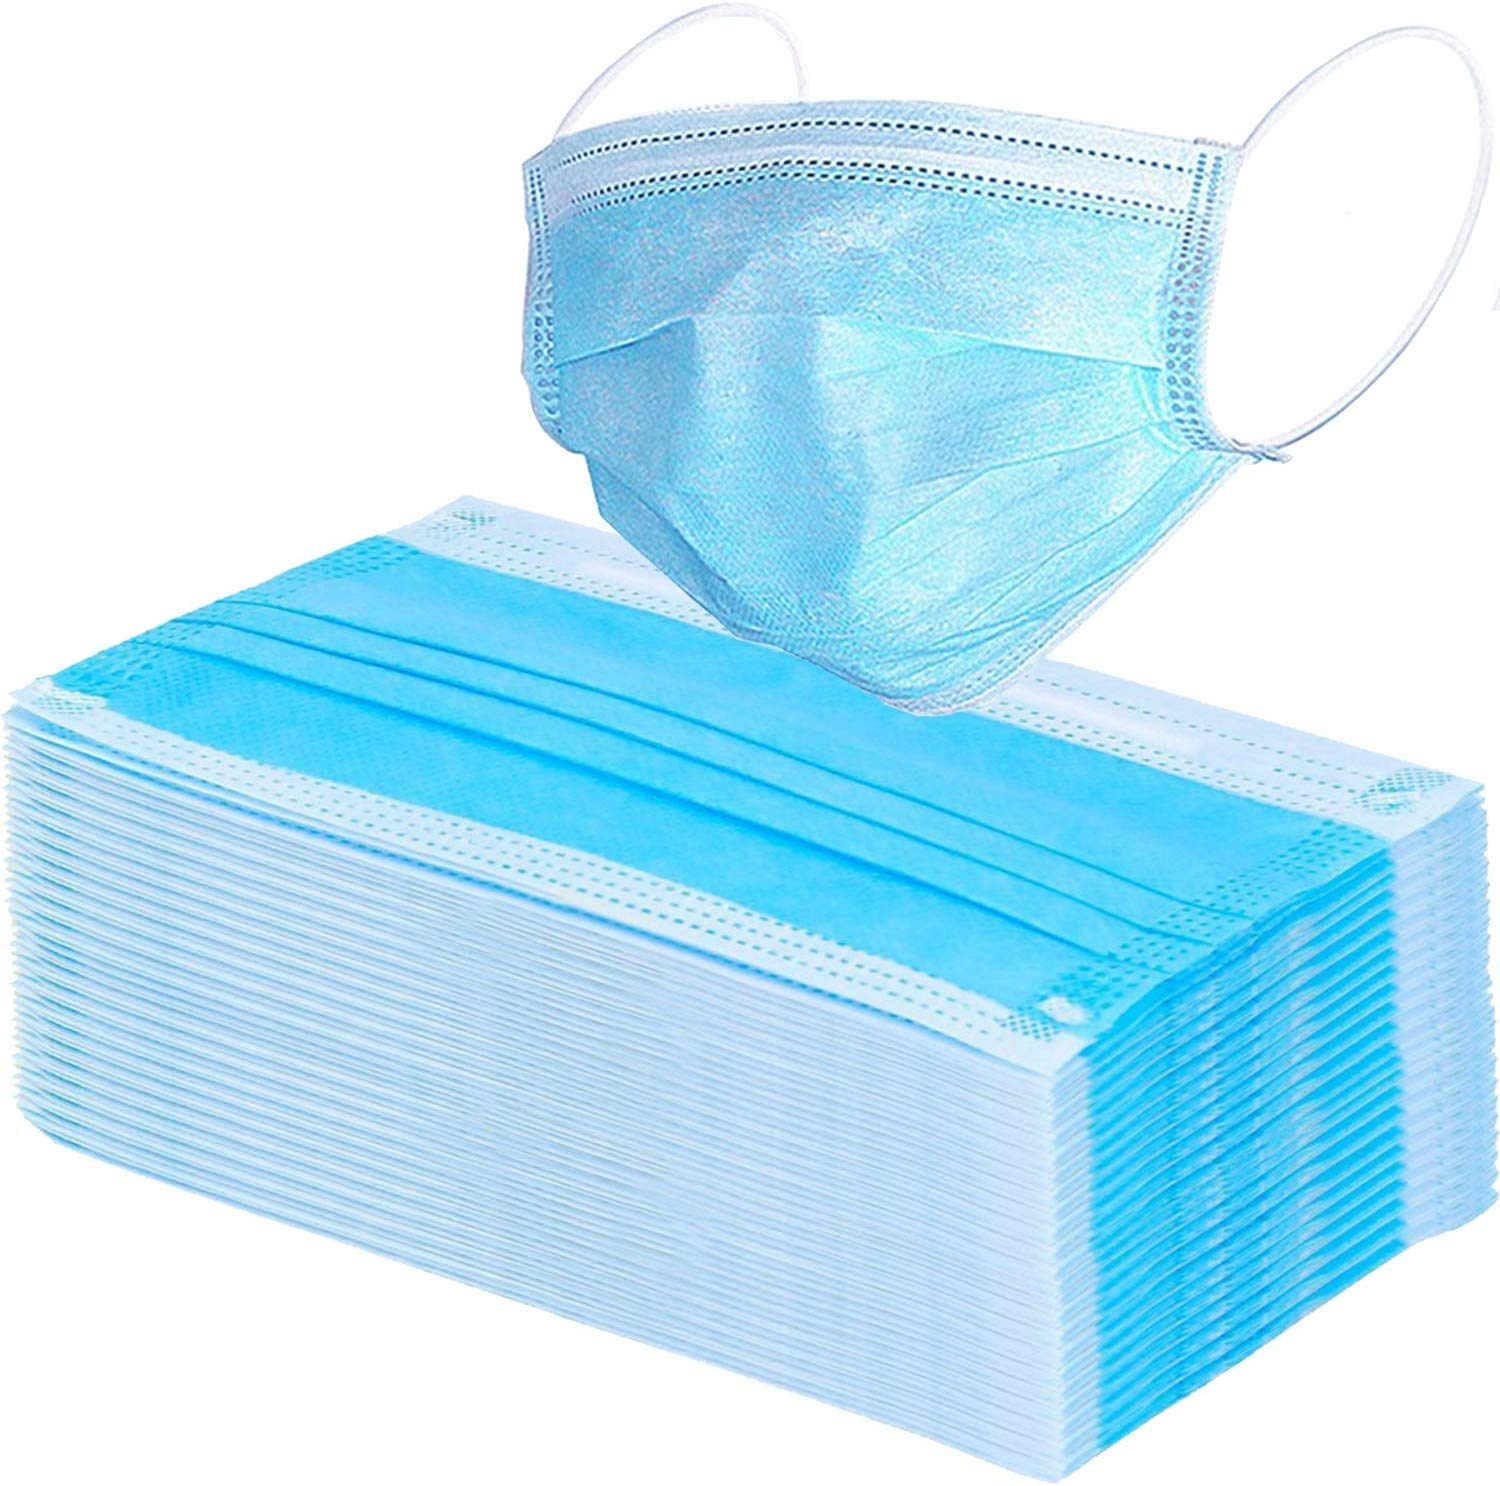 Disposable Air Pollution & Protection Mask Face Mask Nose Mask Dust Mask surgical mask with tie (50)